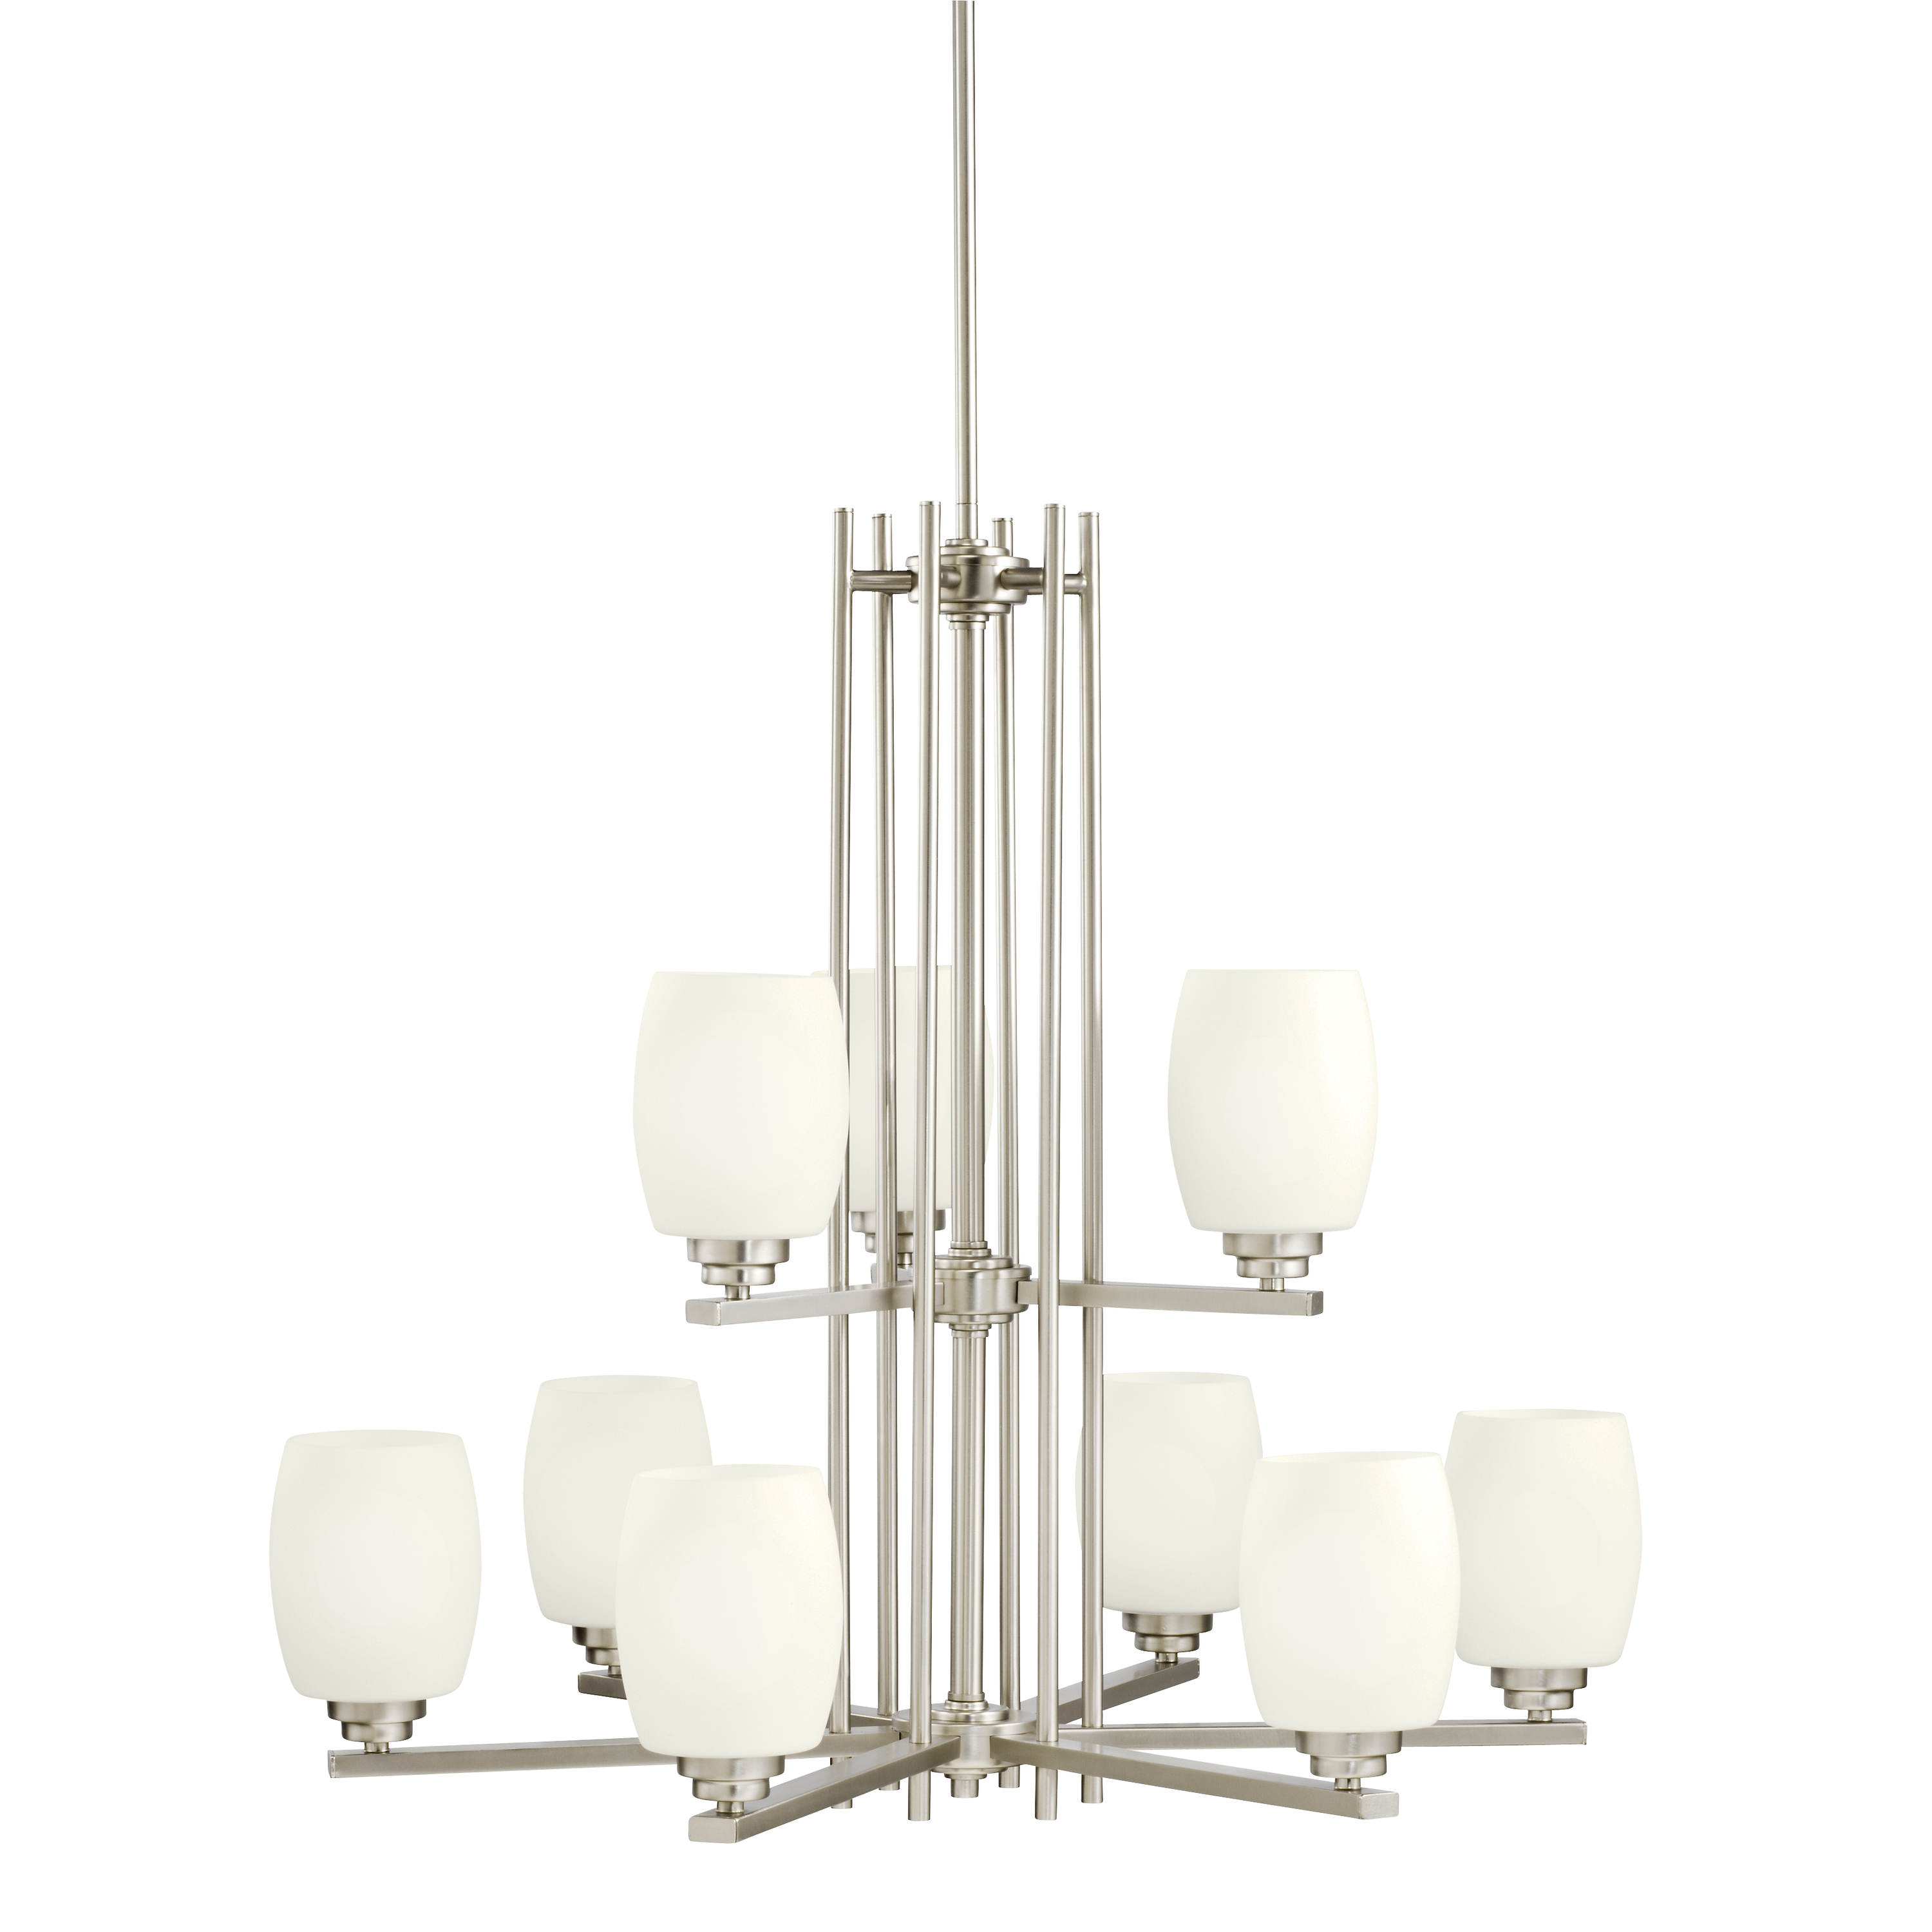 Kichler Eileen LED Chandelier with Satin Etched Cased Opal Shade - Brushed Nickel (1897NIL16)